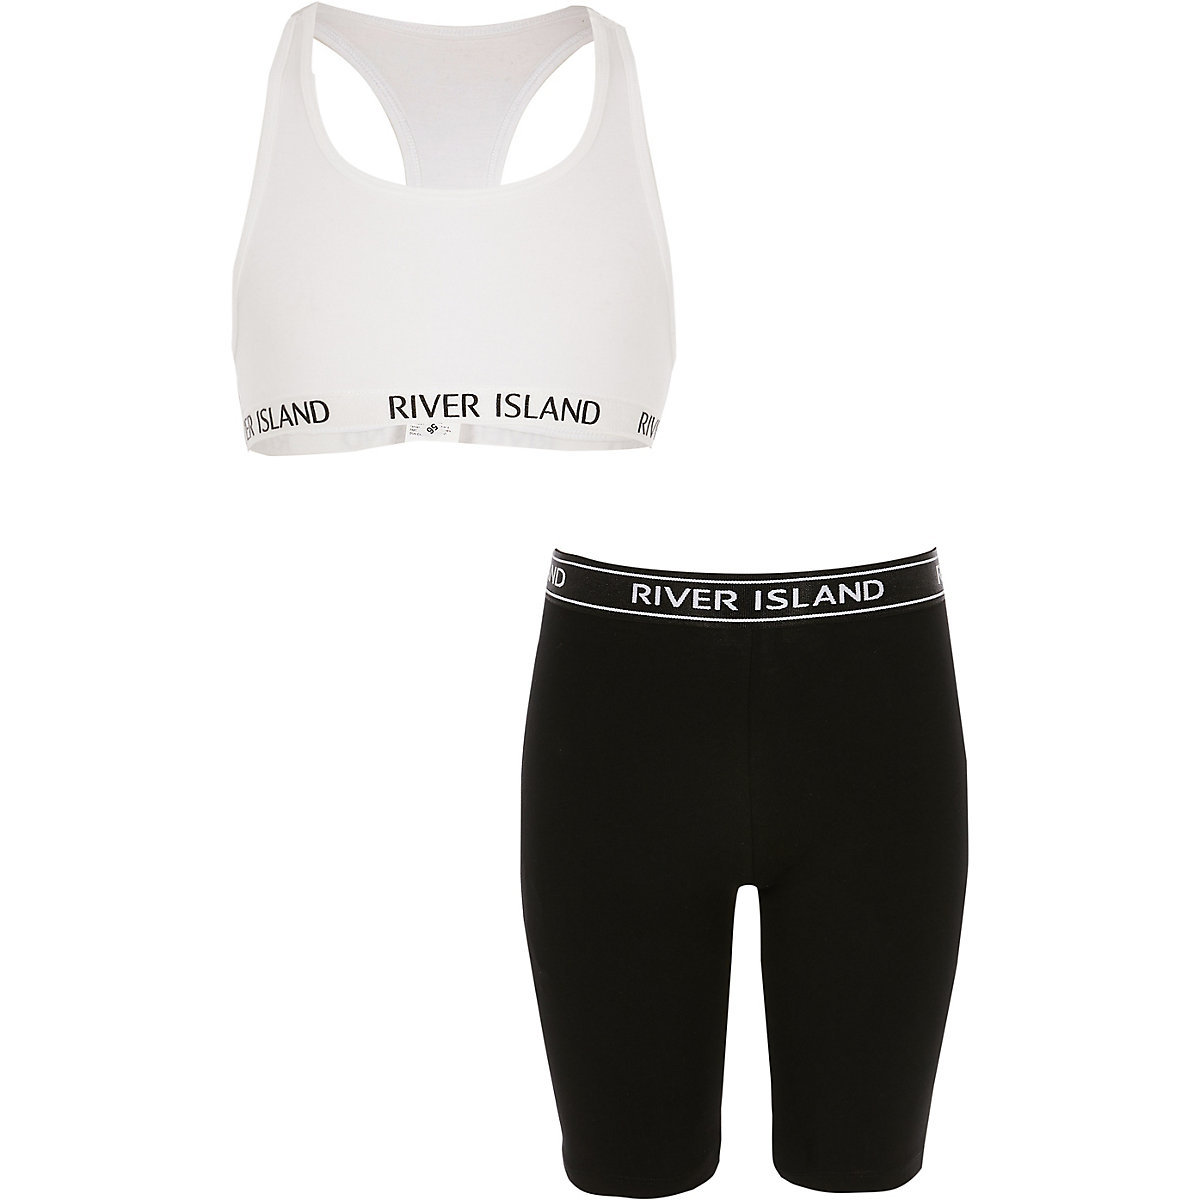 Girls white racer top and cycle shorts outfit